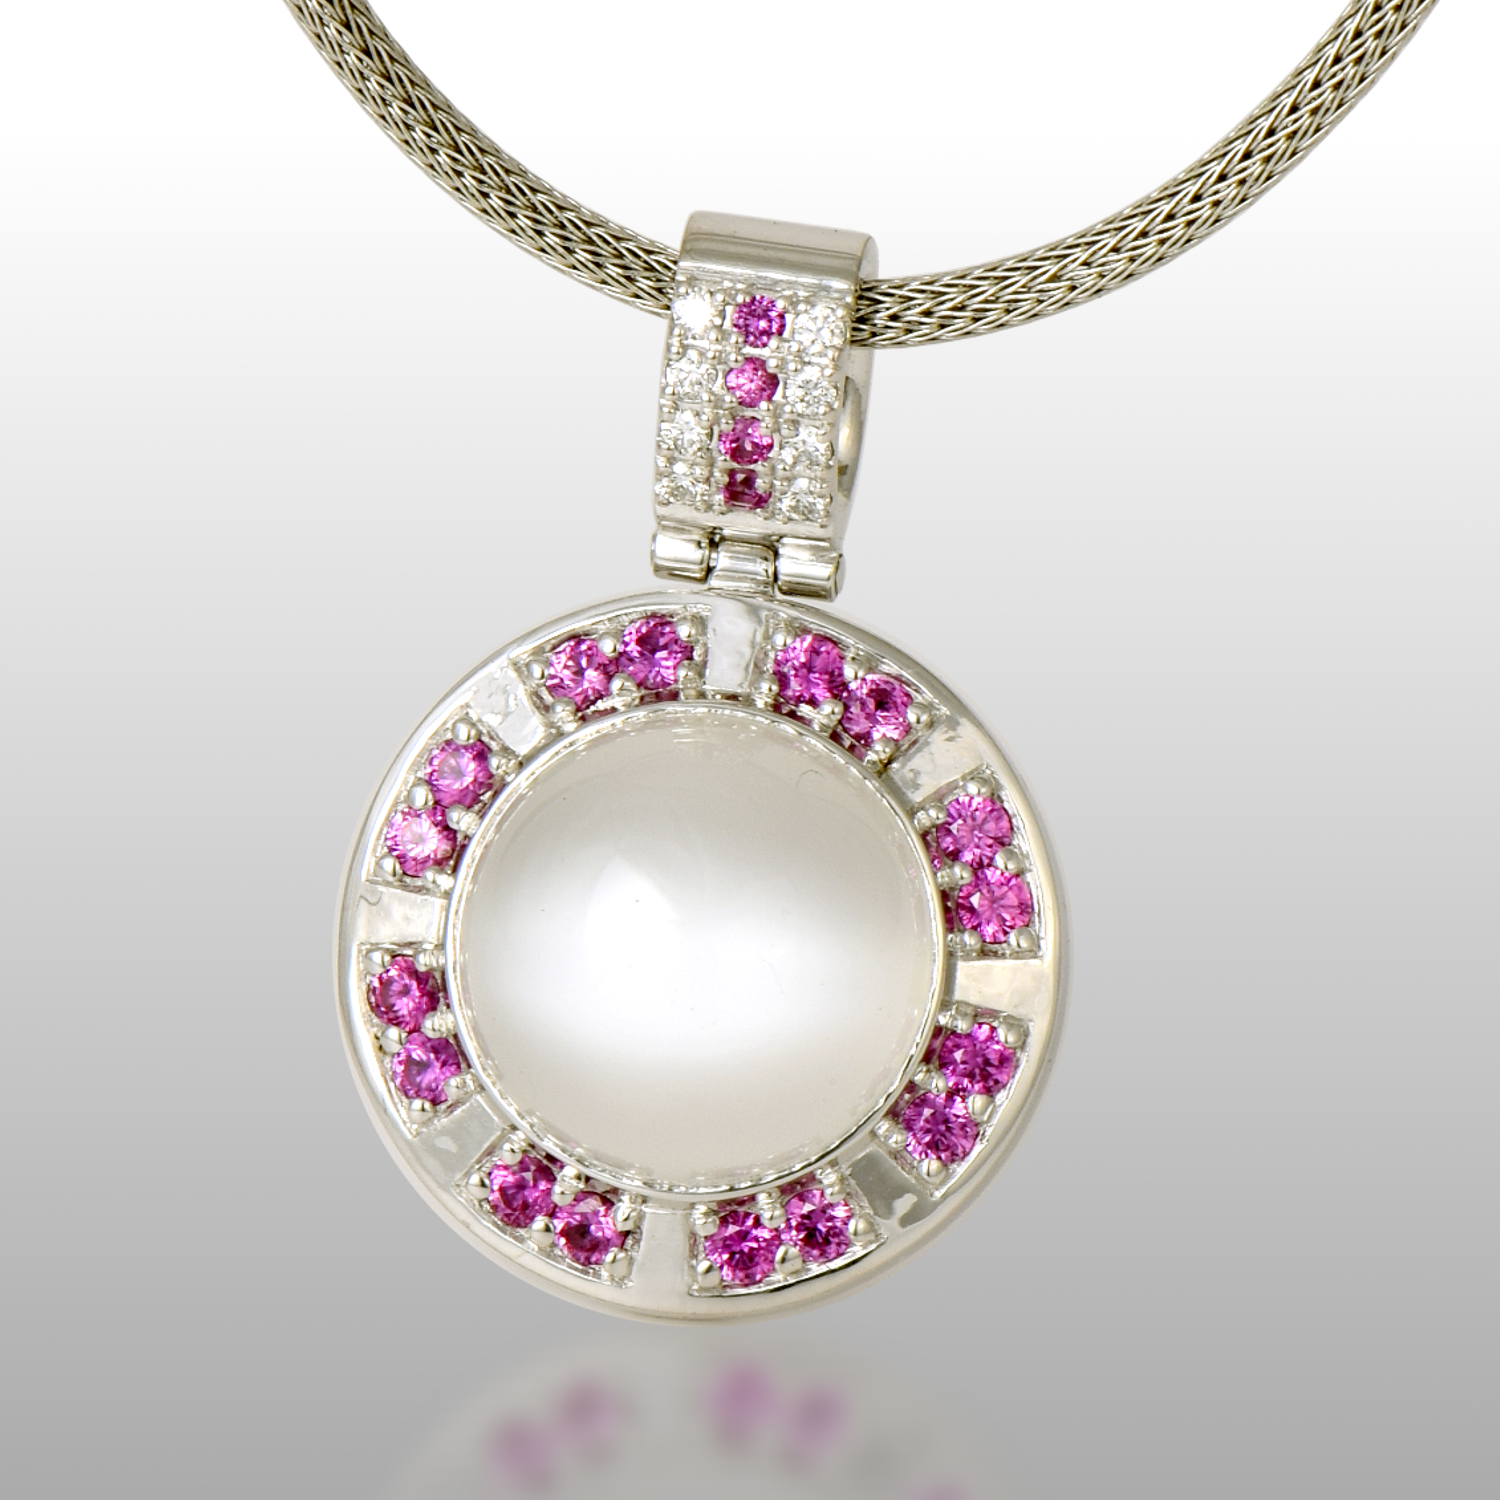 Contemporary Moonstone Pendant 'Orbit' in 18k White Gold with Diamonds and Pink Sapphires by Pratima Design Fine Art Jewelry